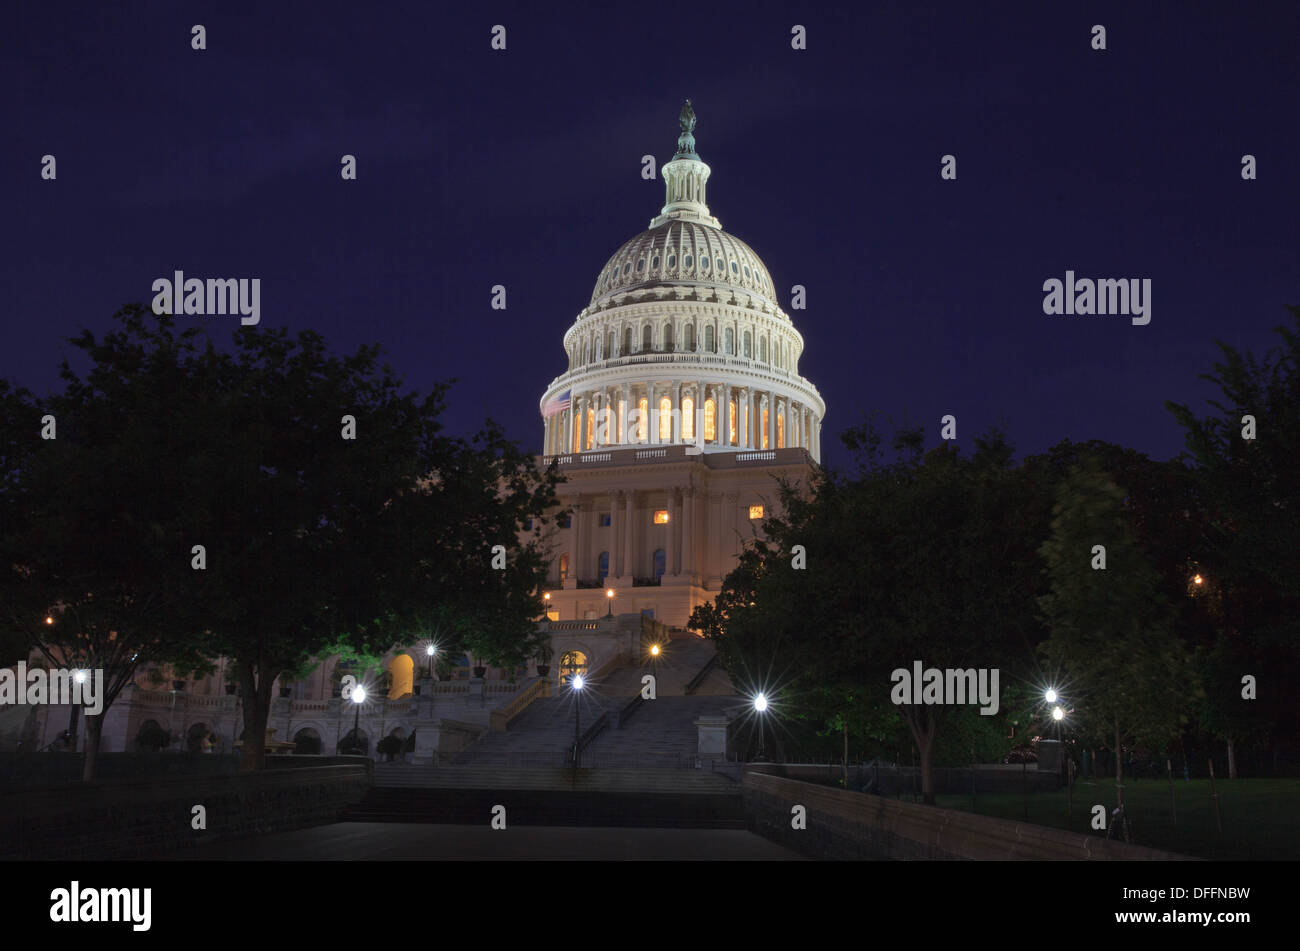 The US Capitol at night. Stock Photo